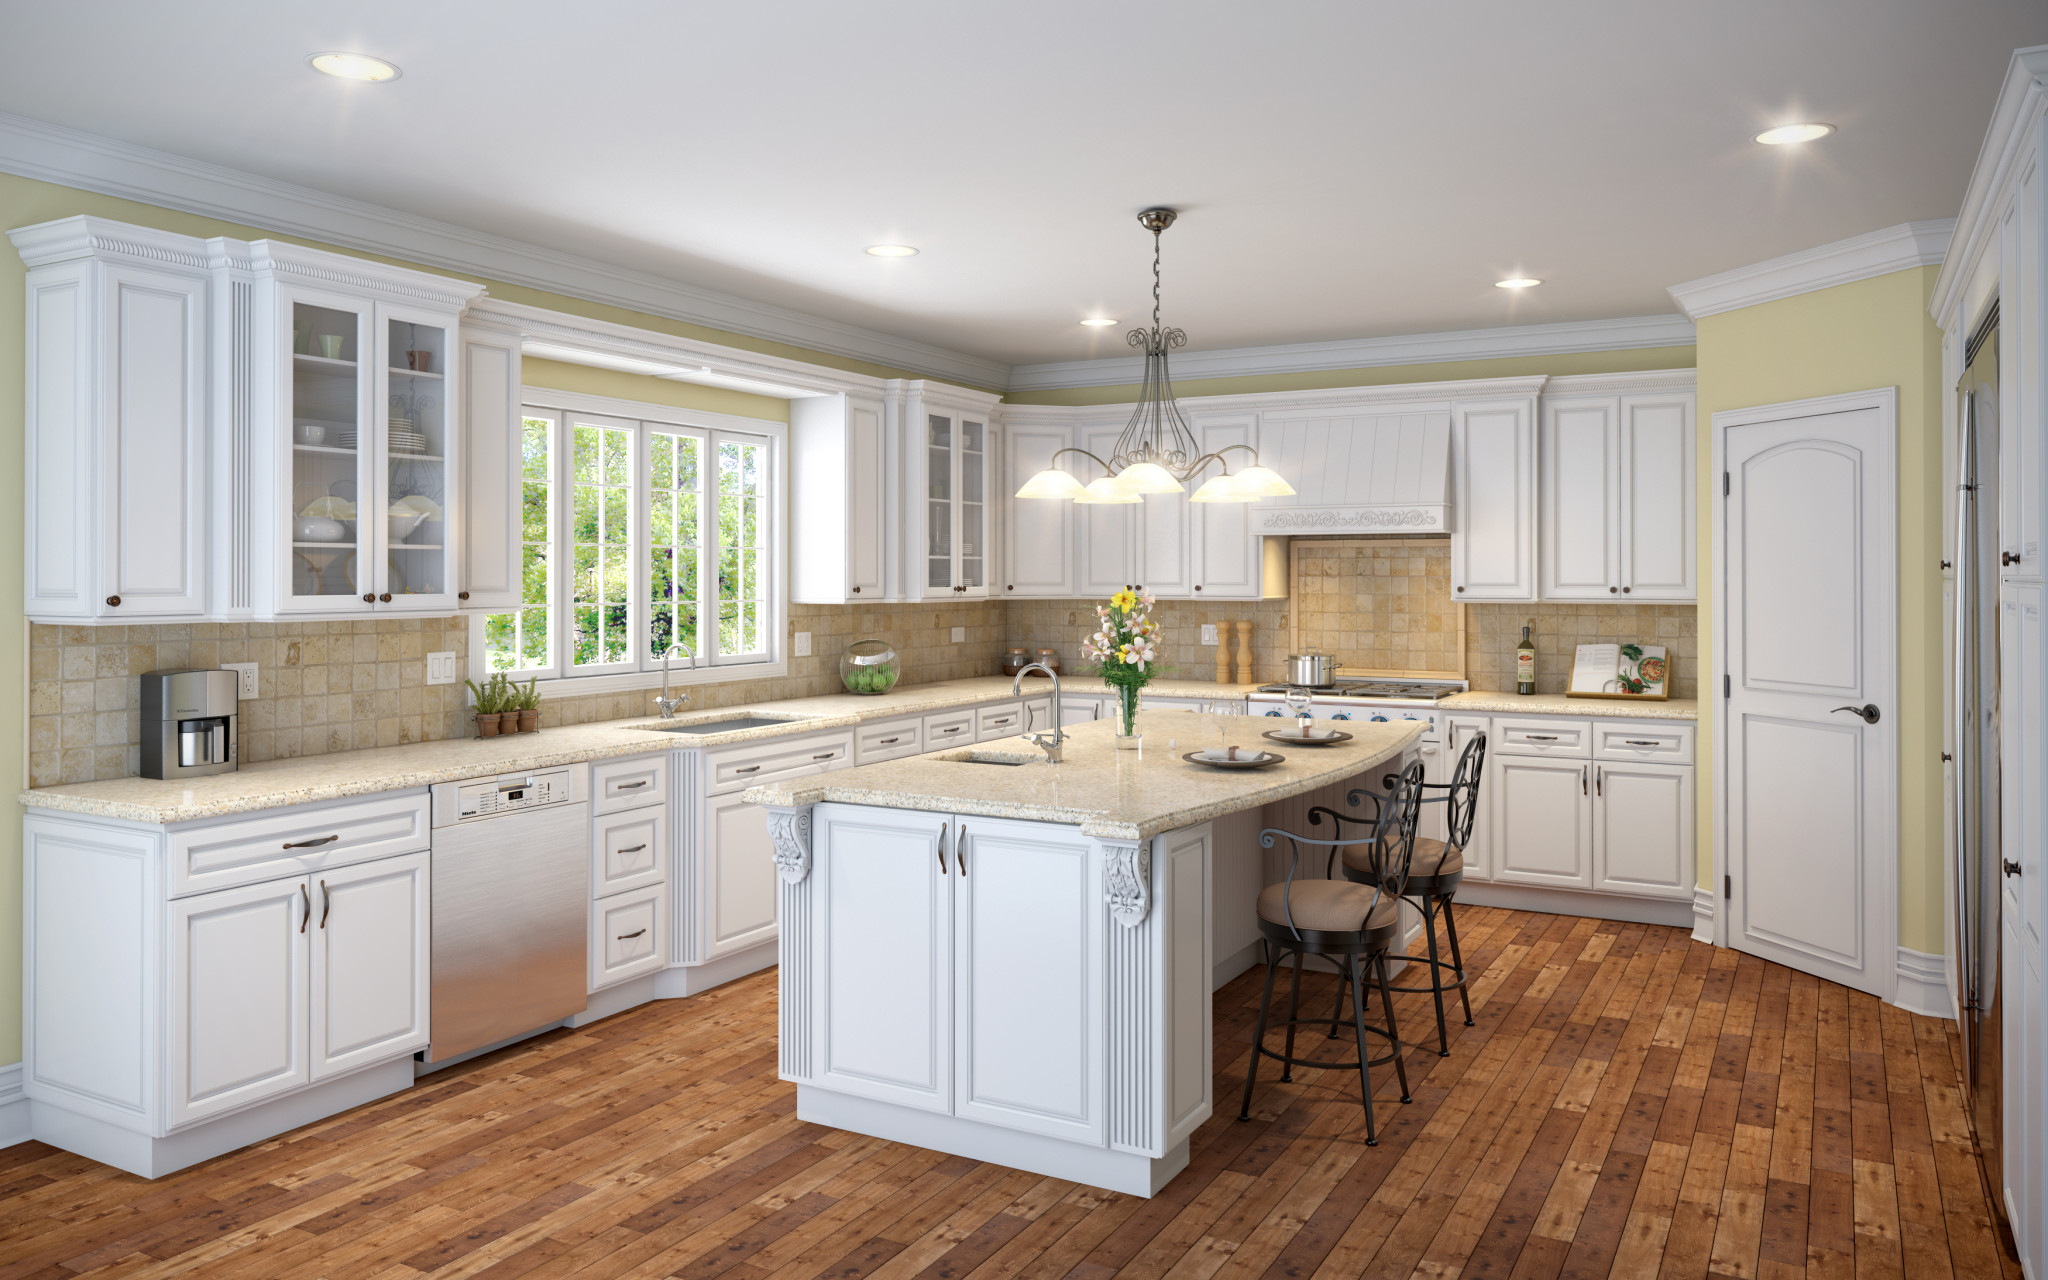 Buying Kitchen Cabinet Doors Only Mayland Cabinets U S Leading Cabinets Manufacturer